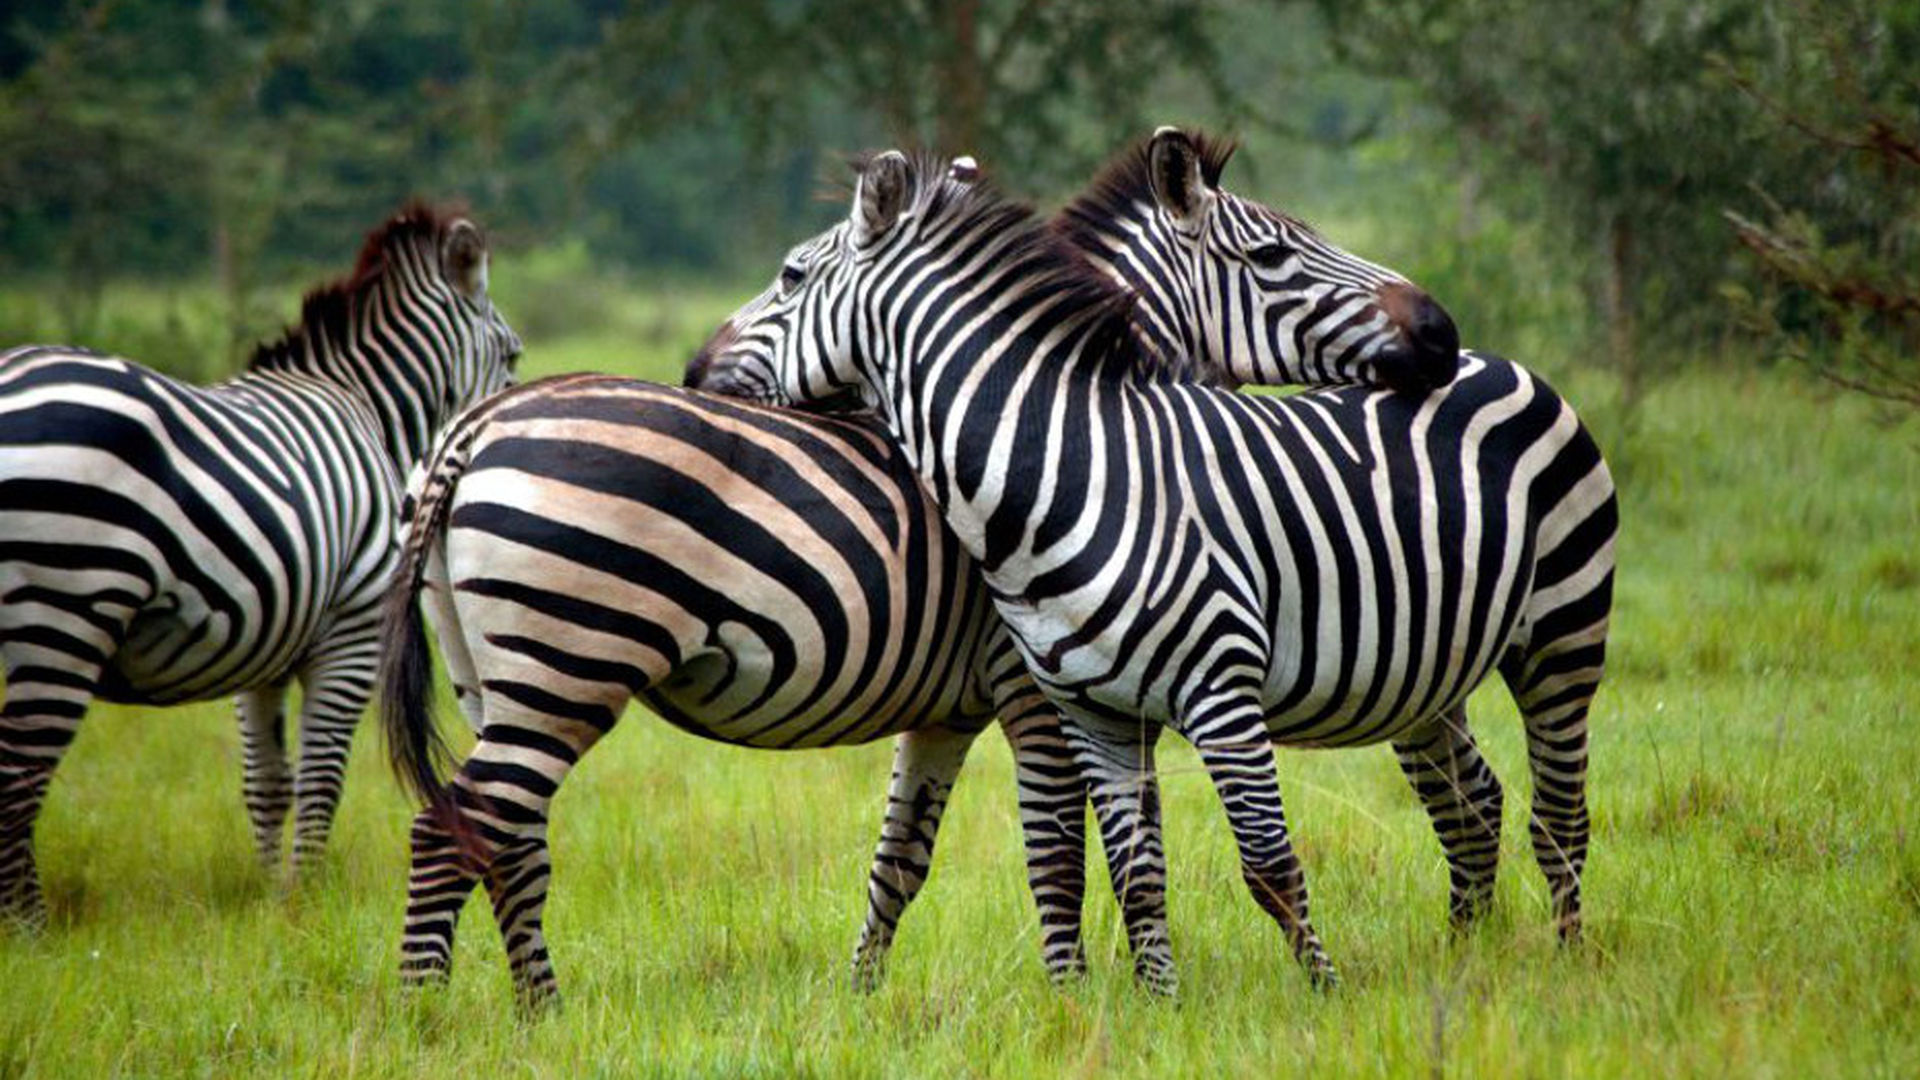 Zebra-Lake-Mburo-National-Park-Uganda-Safari